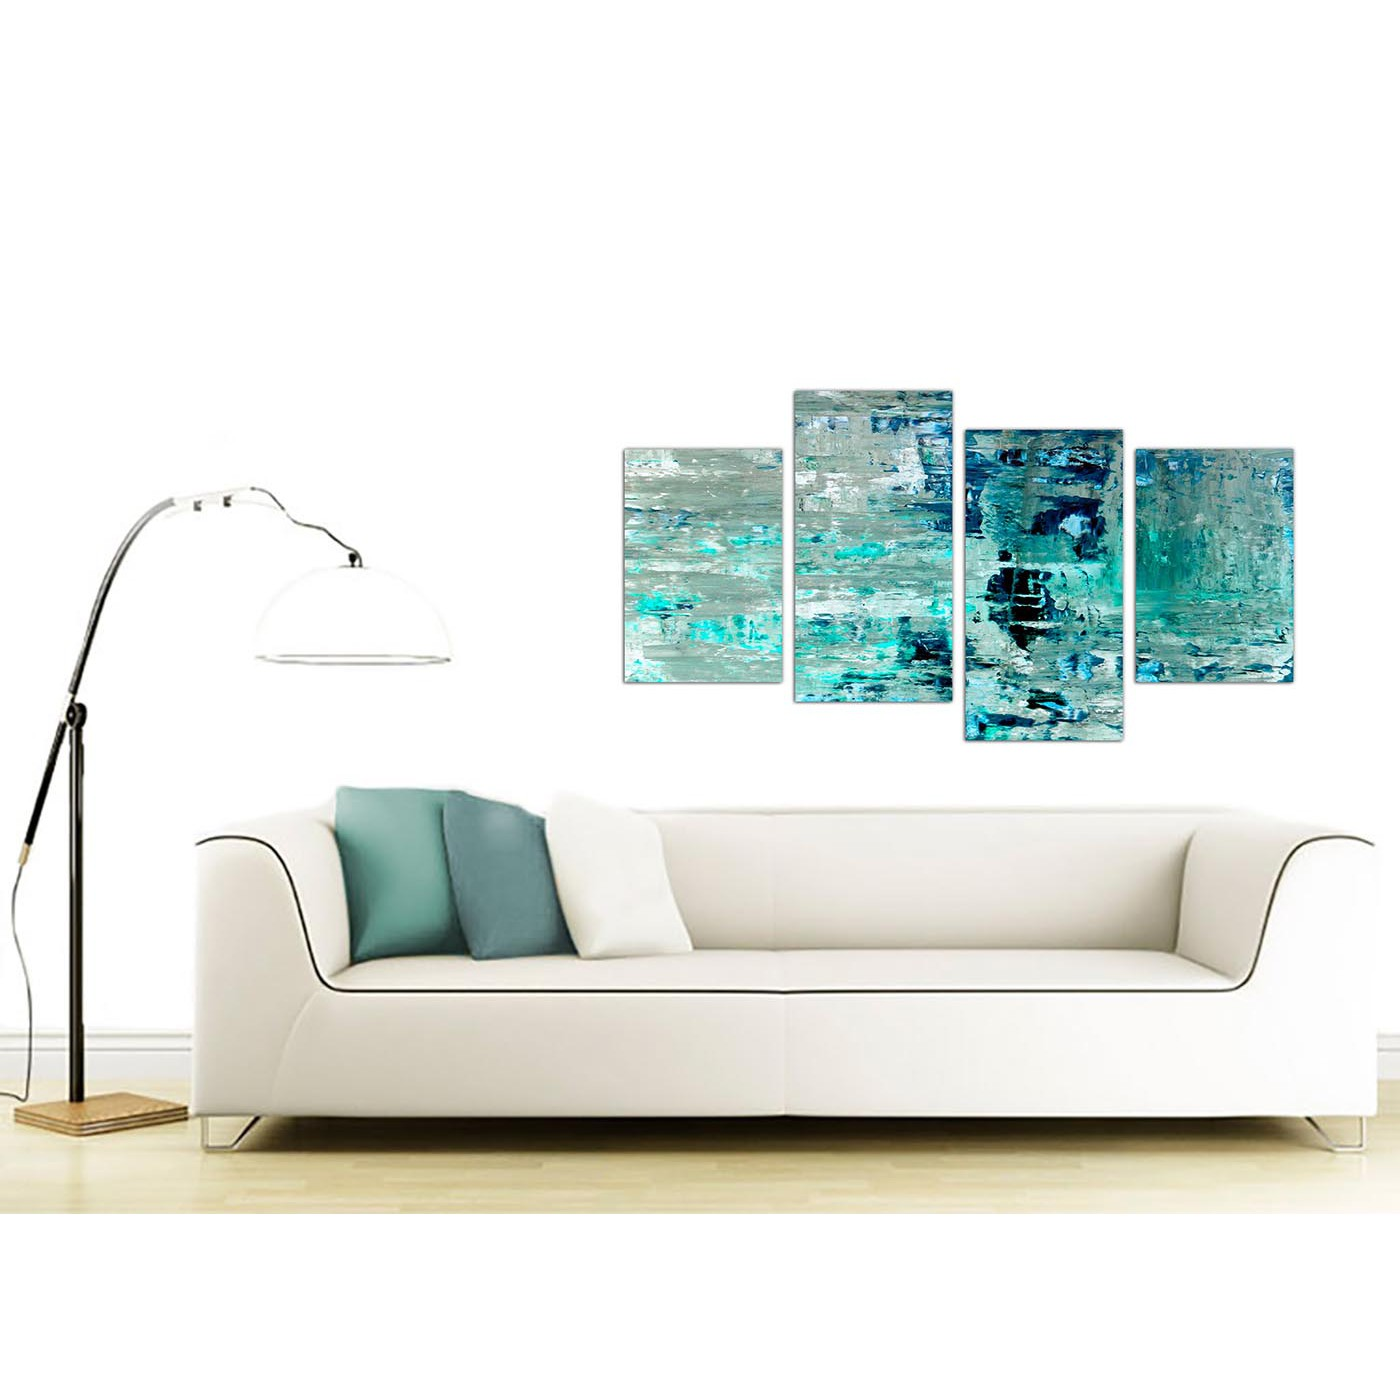 Large Turquoise Teal Abstract Painting Wall Art Print Canvas - Multi ...